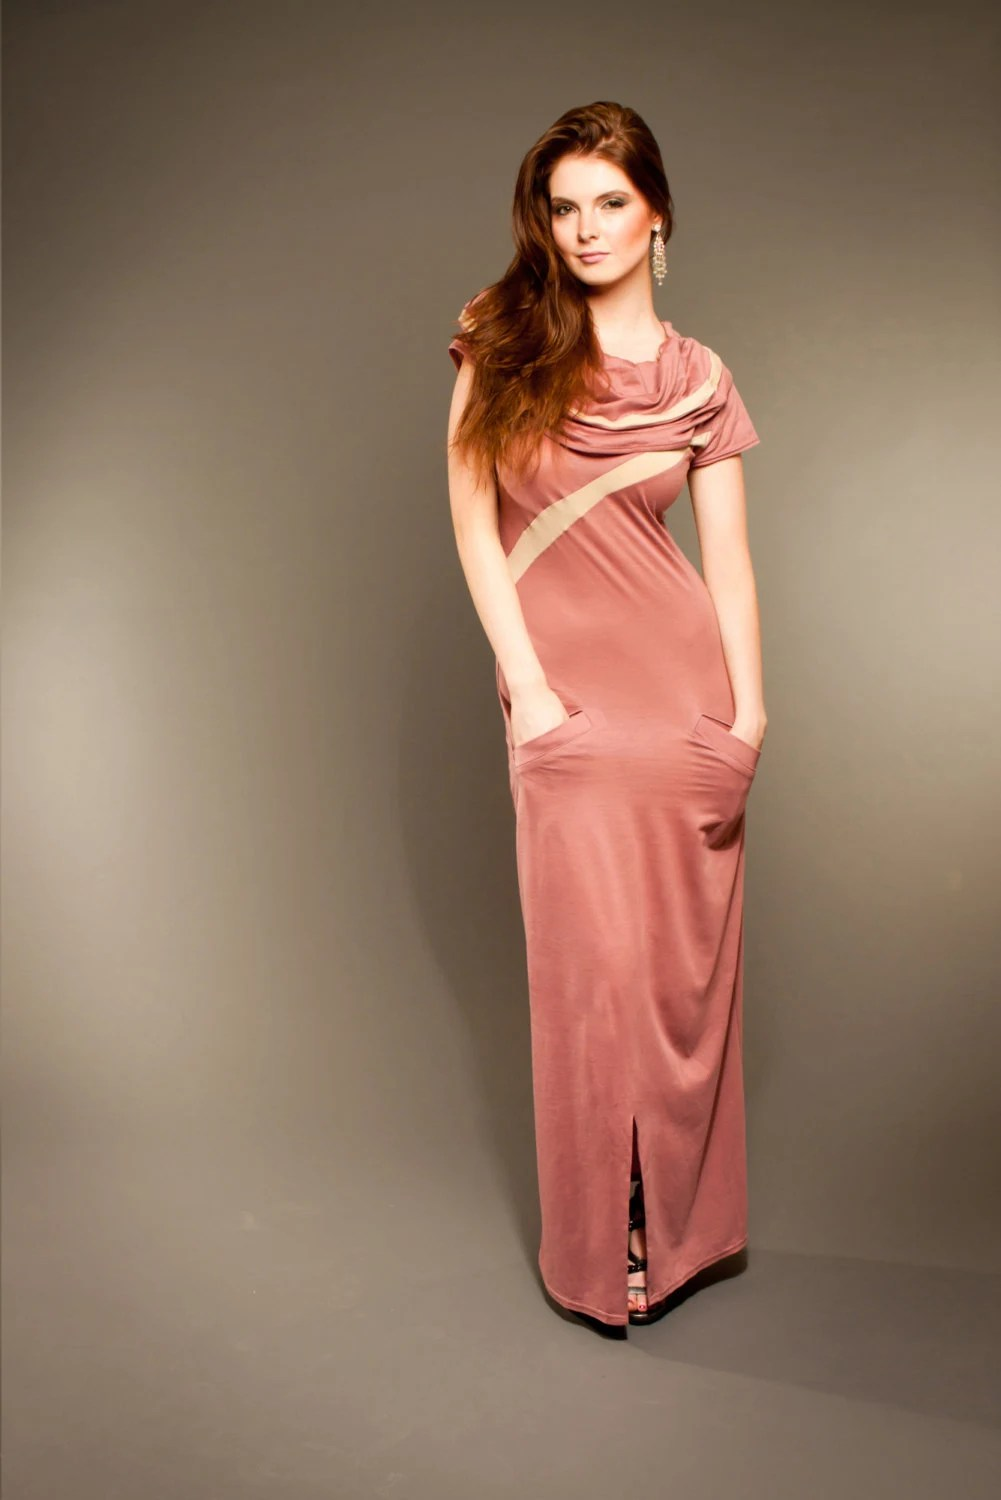 Bionic Rapture Organic Pink Cotton Maxi Dress with Hood and Gold Accents - SinuousByEmily